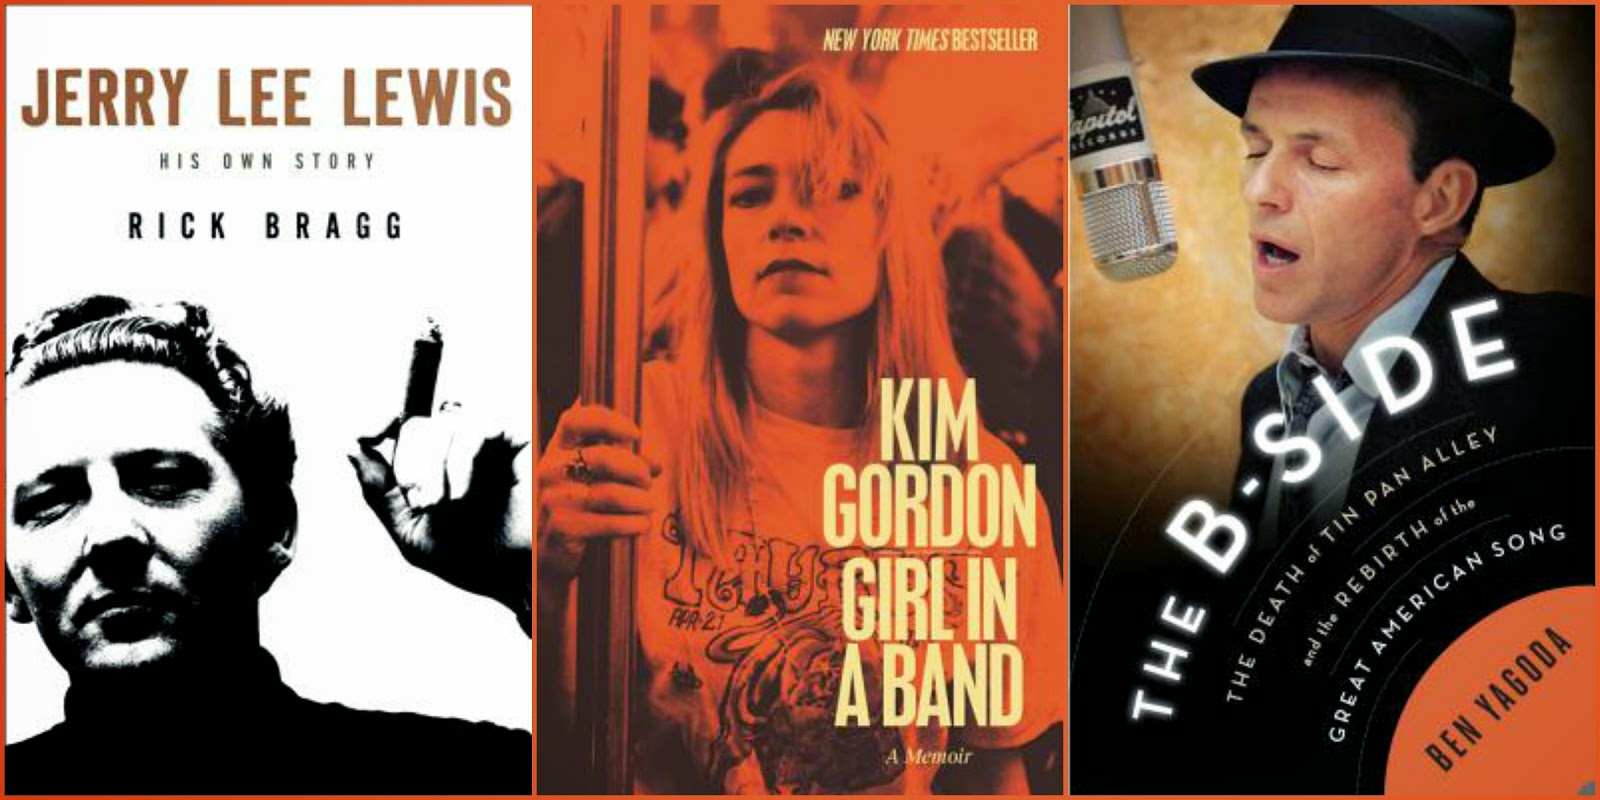 Jerry Lee Lewis by Rick Bragg, Girl in a Band by Kim Gordon, The B-Side by Ben Yagoda